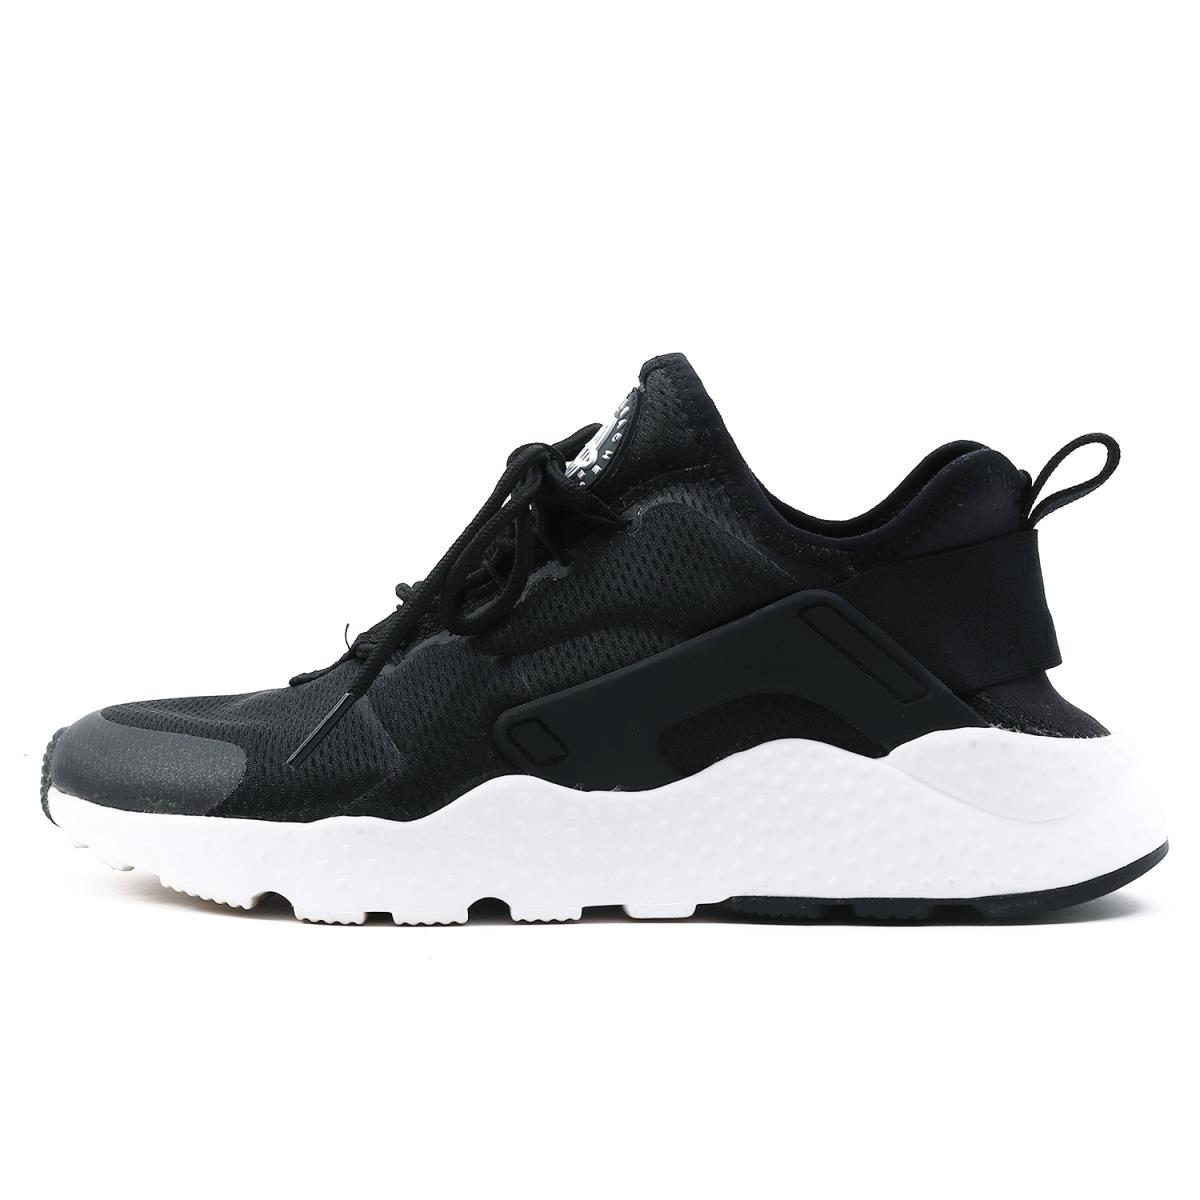 f9080336d BEEGLE by Boo-Bee: NIKE (Nike) WMNS AIR HUARACHE RUN ULTRA (819,151 ...